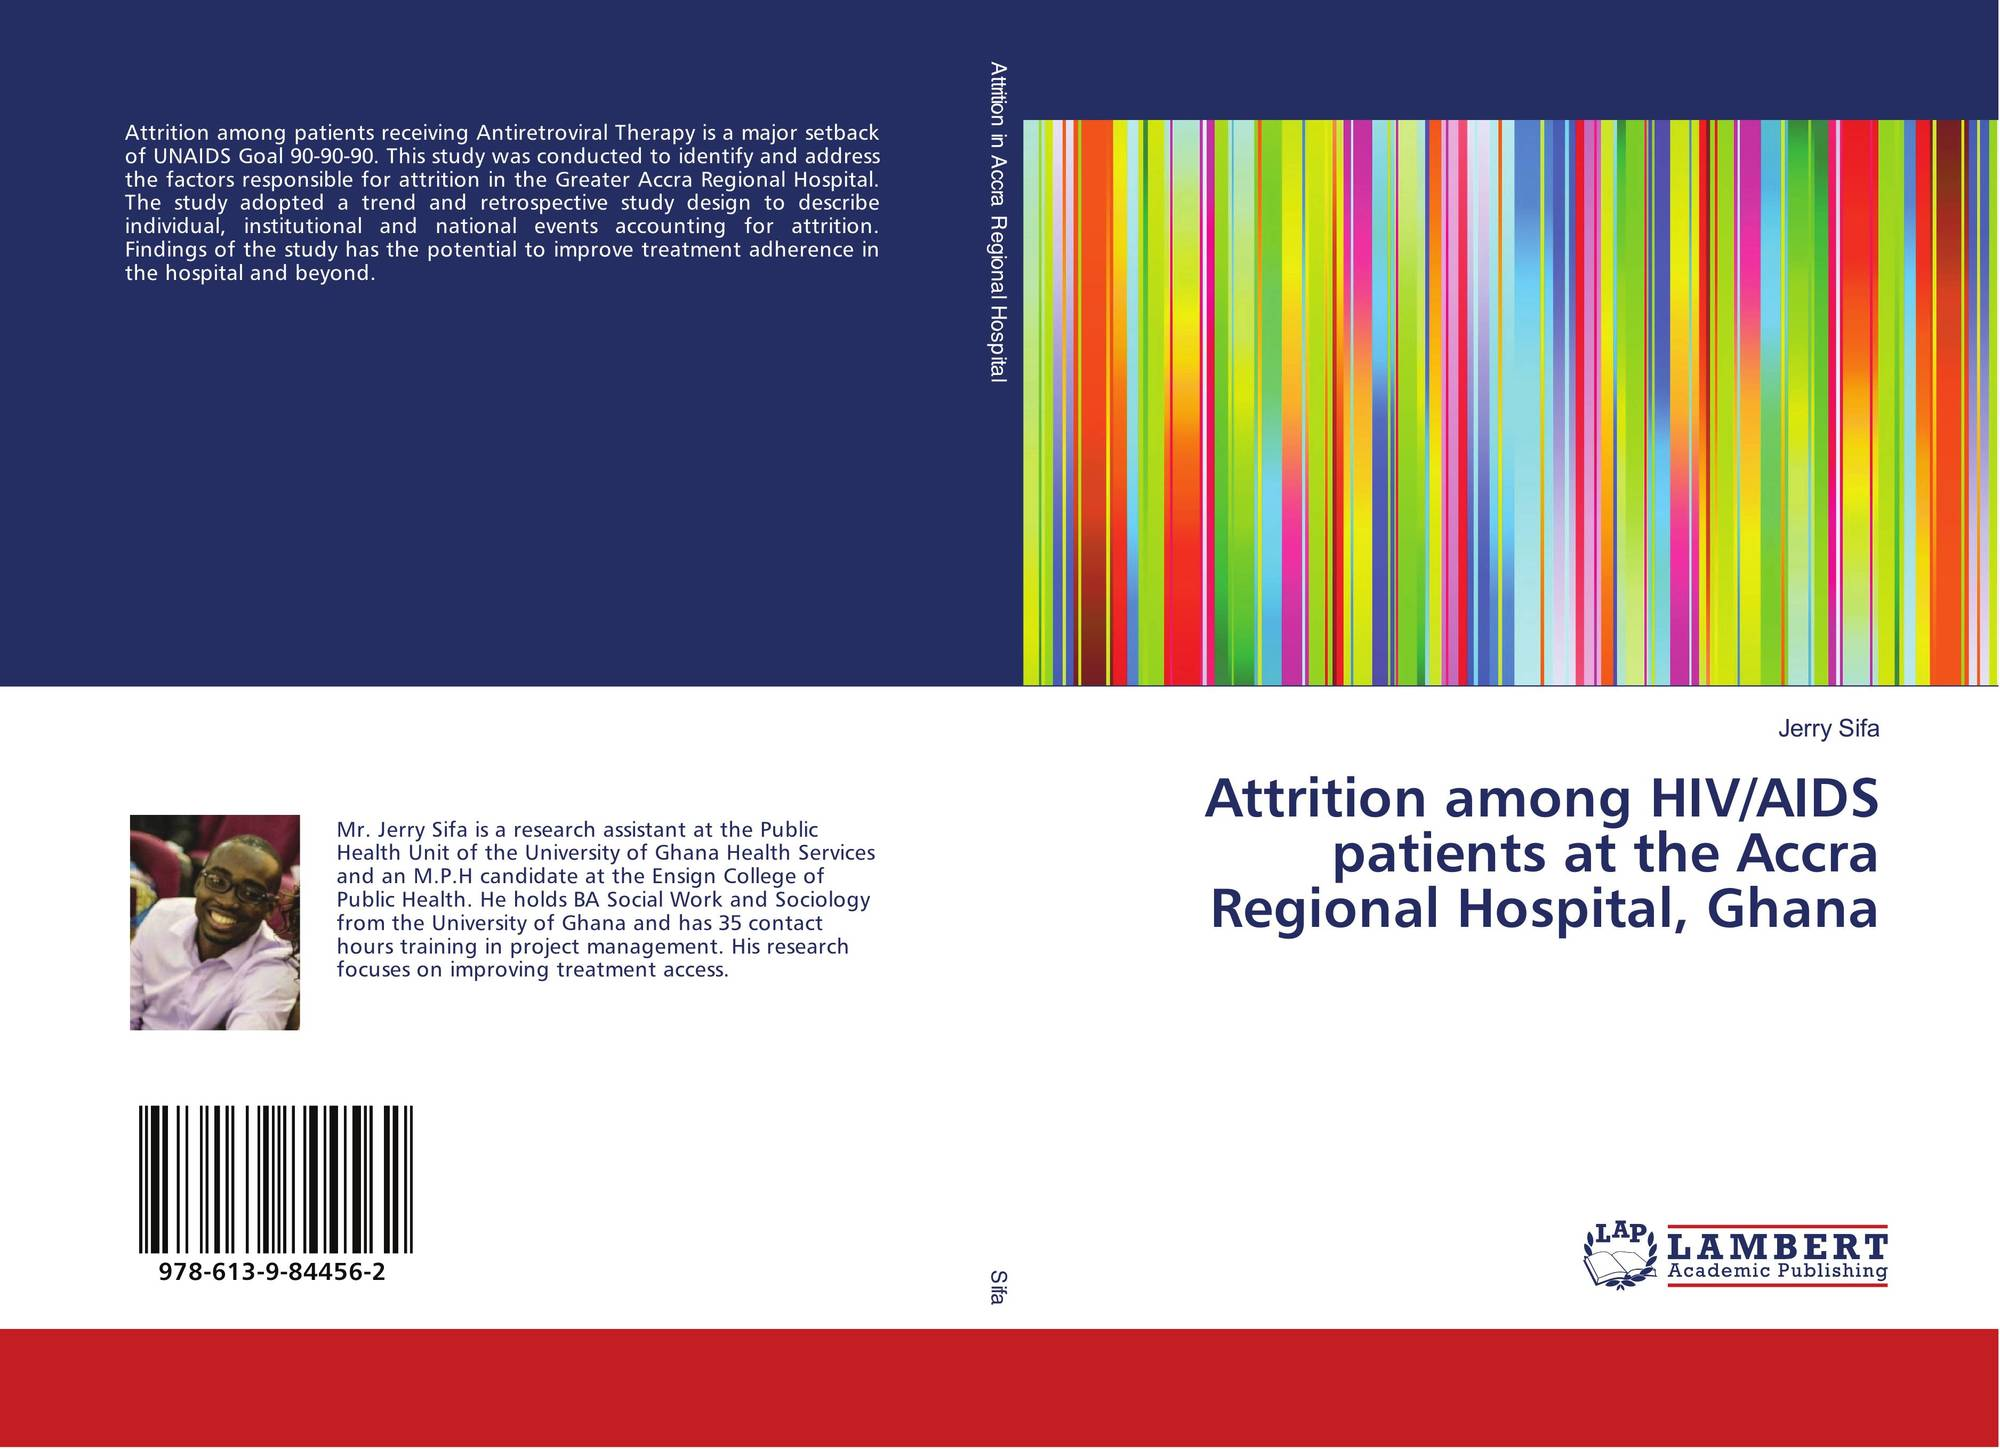 Attrition among HIV/AIDS patients at the Accra Regional